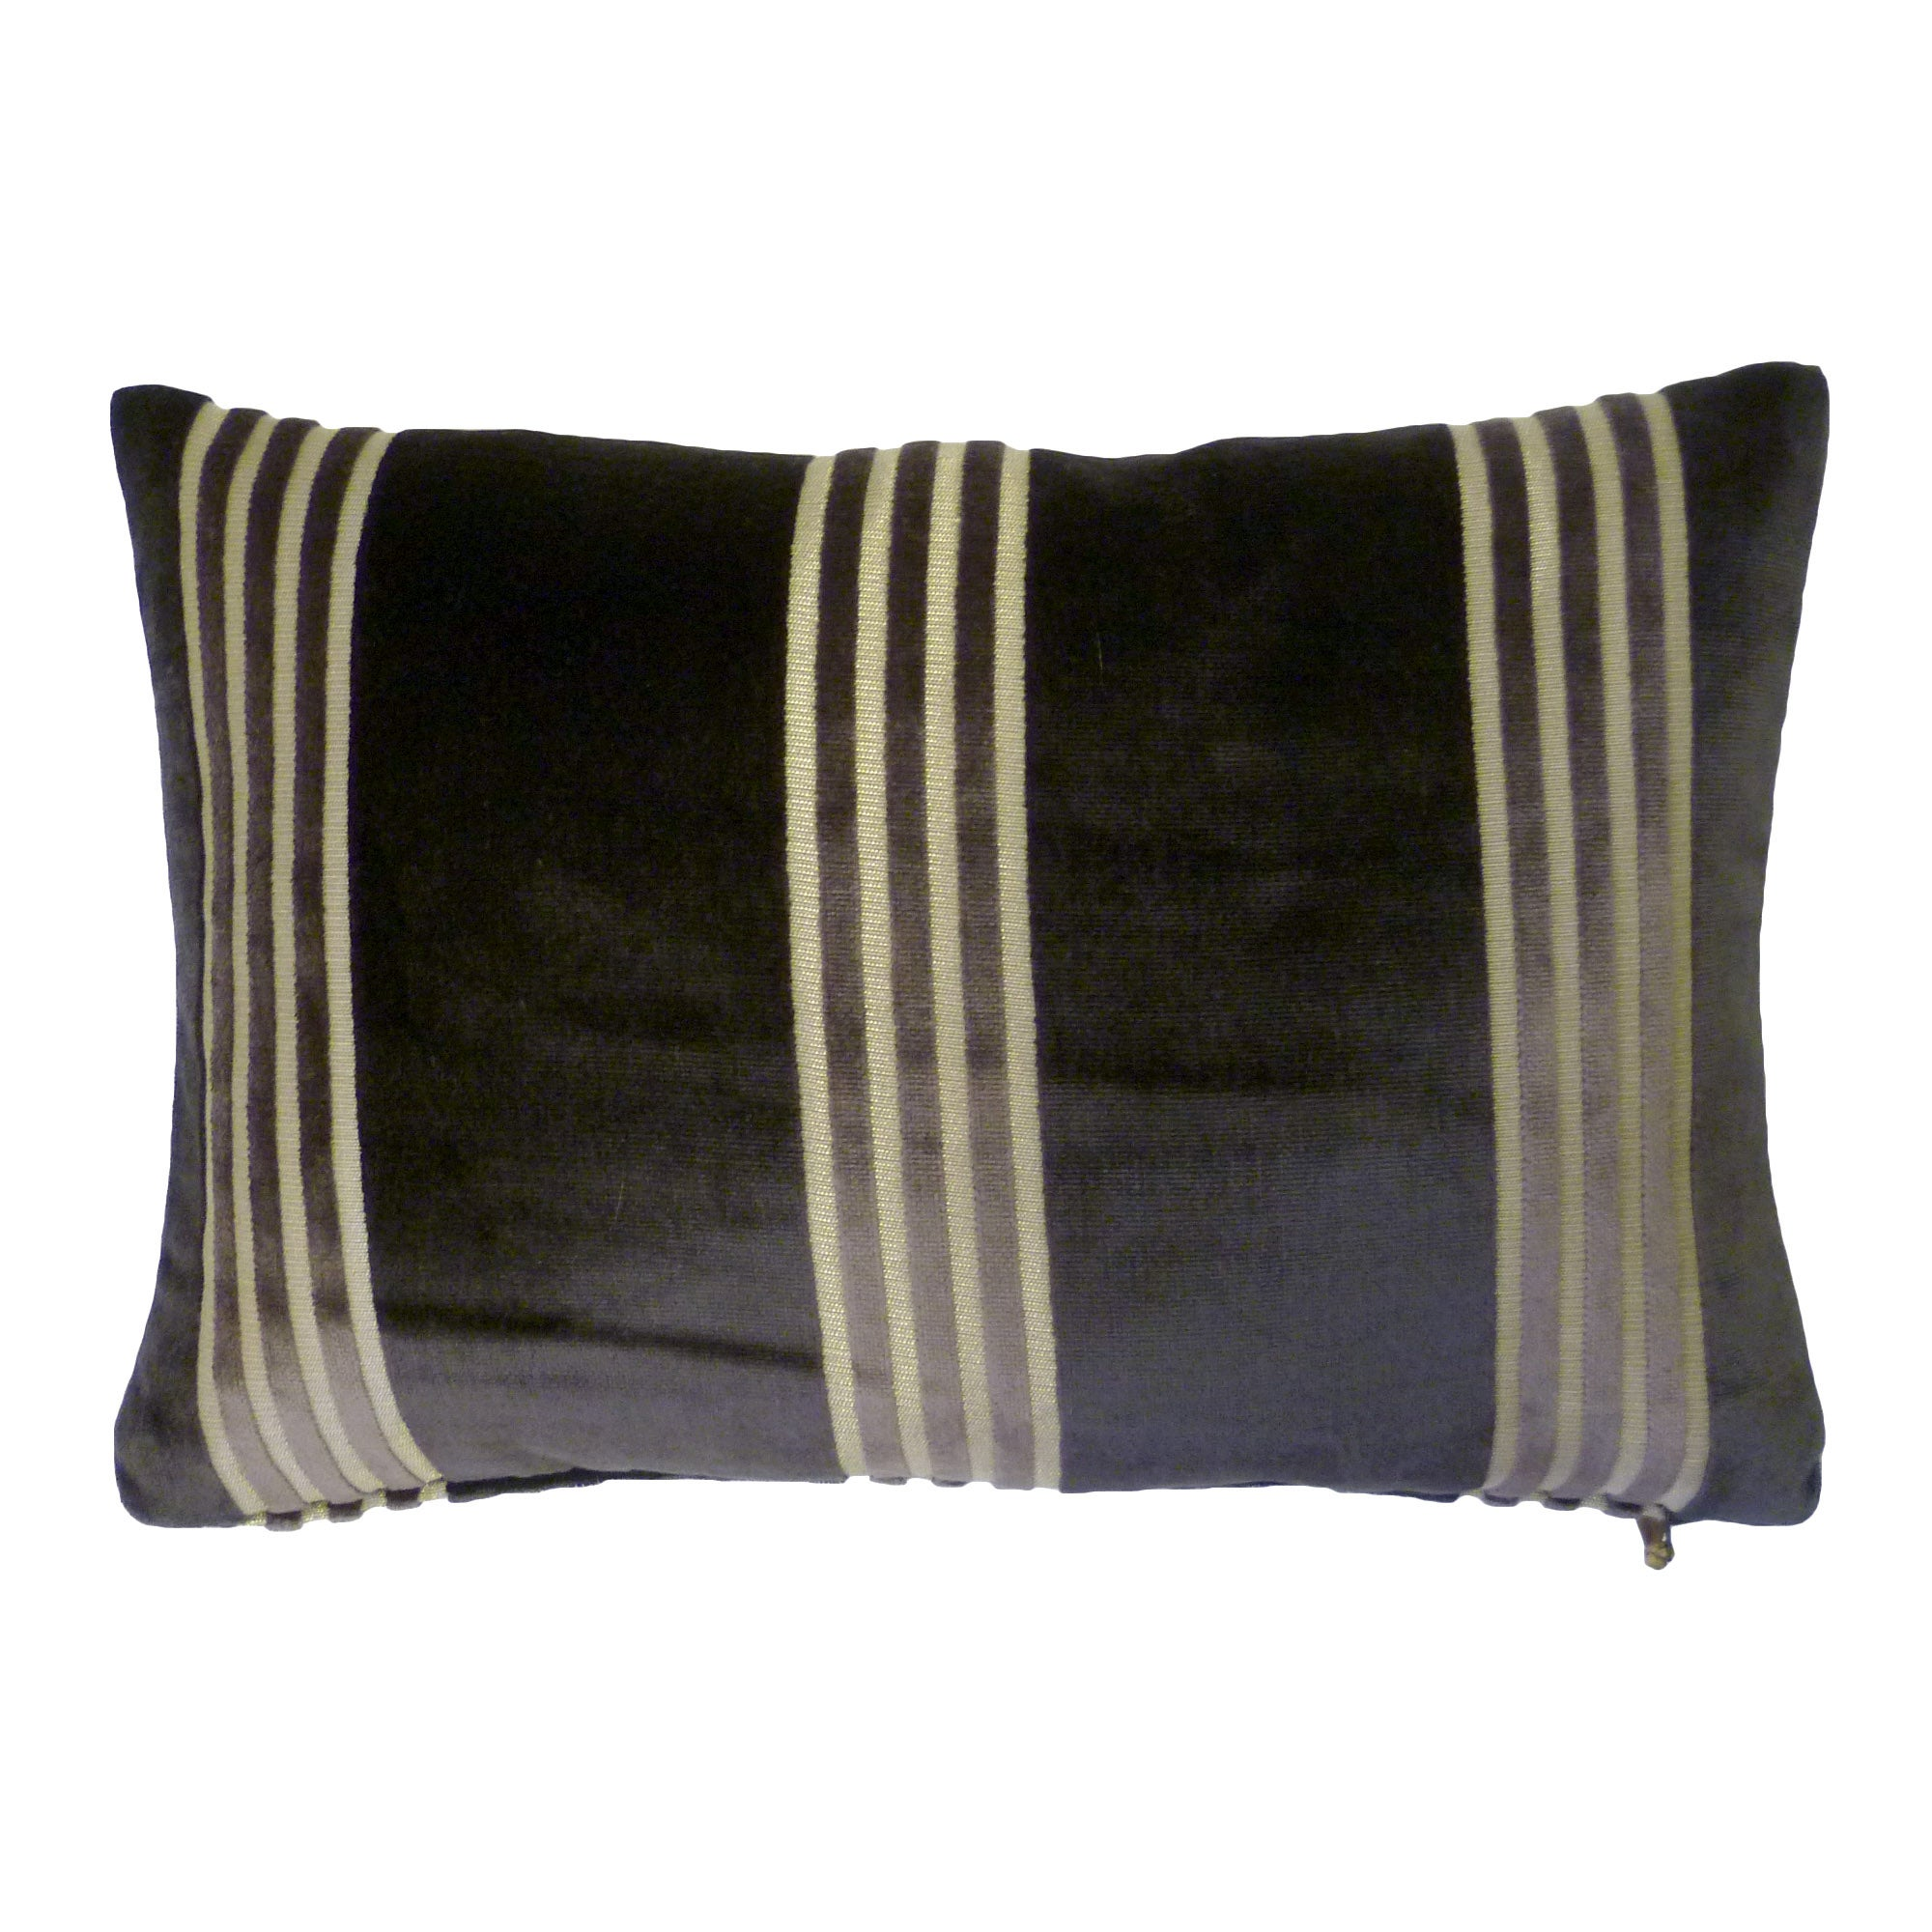 Dorma Charcoal Astor Stripe Cushion